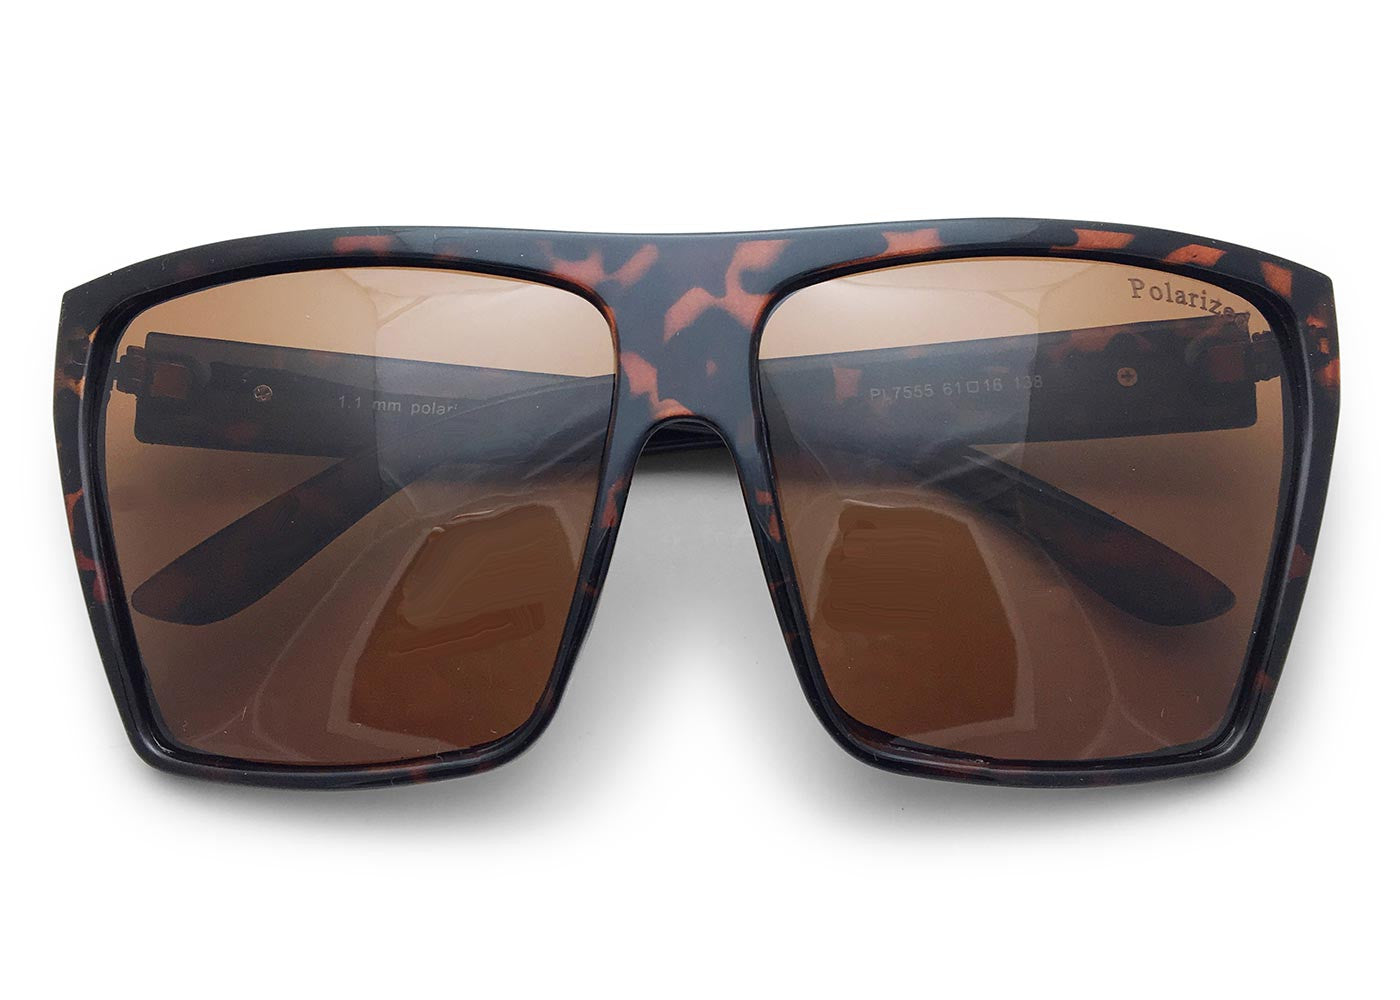 Big Drops with Polarized Lenses in Tortoise